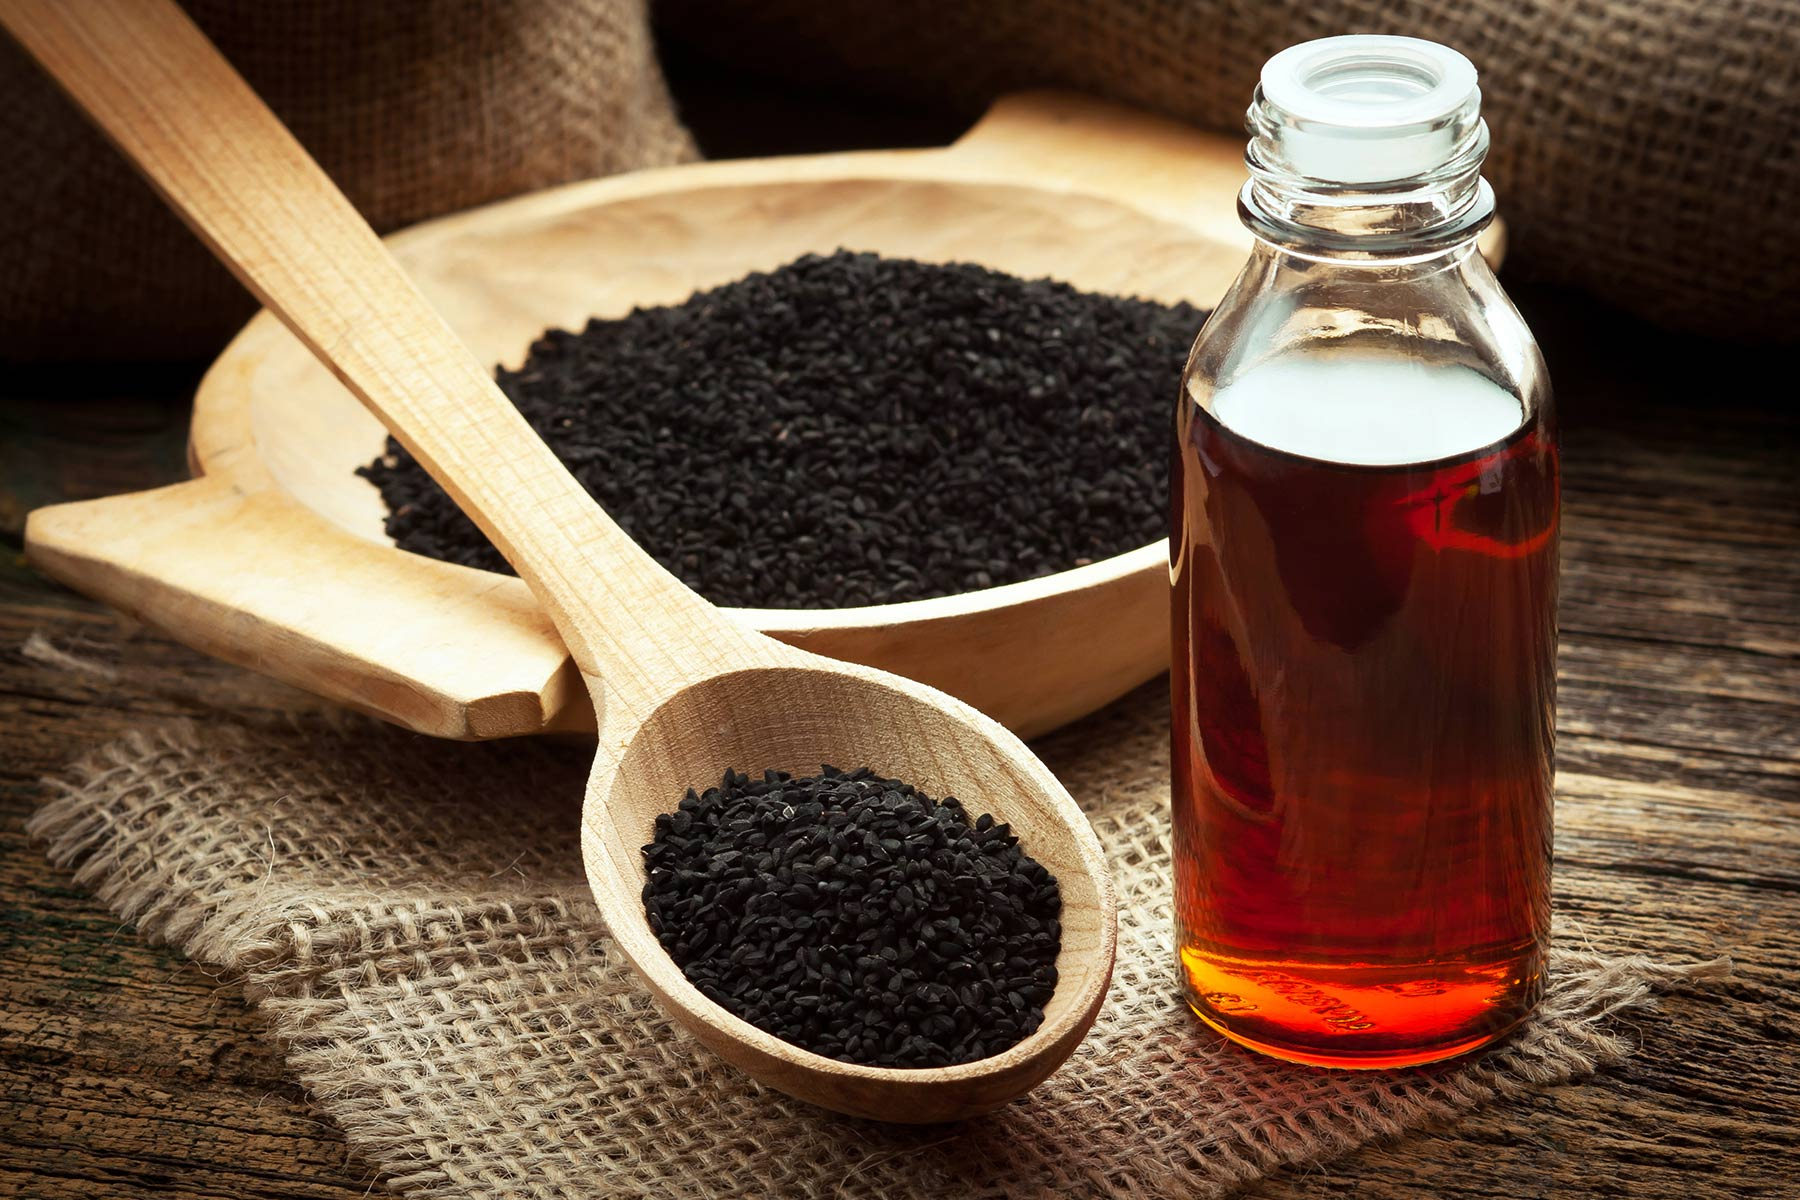 The Health and Beauty Benefits of Black Seed Oil